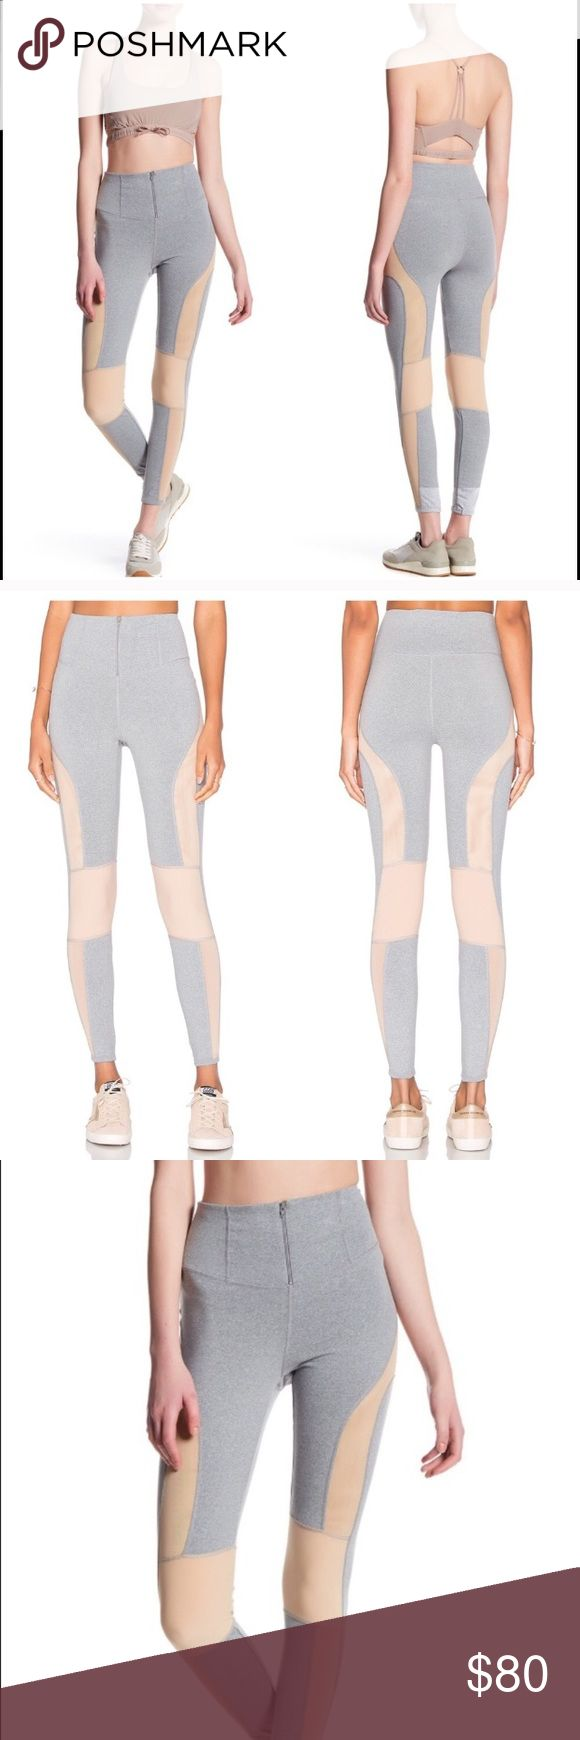 """Free People movement cool rider front zip leggings Moto-Inspired leggings take you from the studio to the streets with a cool zipper high waist, color-blocked panels and contoured power mesh insets that vent excess heat as you work out. Smooth flat-lock seams ensure a chafe-free fit against your skin. Soft and stretchy fit.                                                          •Front zip fly •Waistband stash pocket in the back             Approx. 11"""" rise, 26"""" inseam         88% nylon…"""